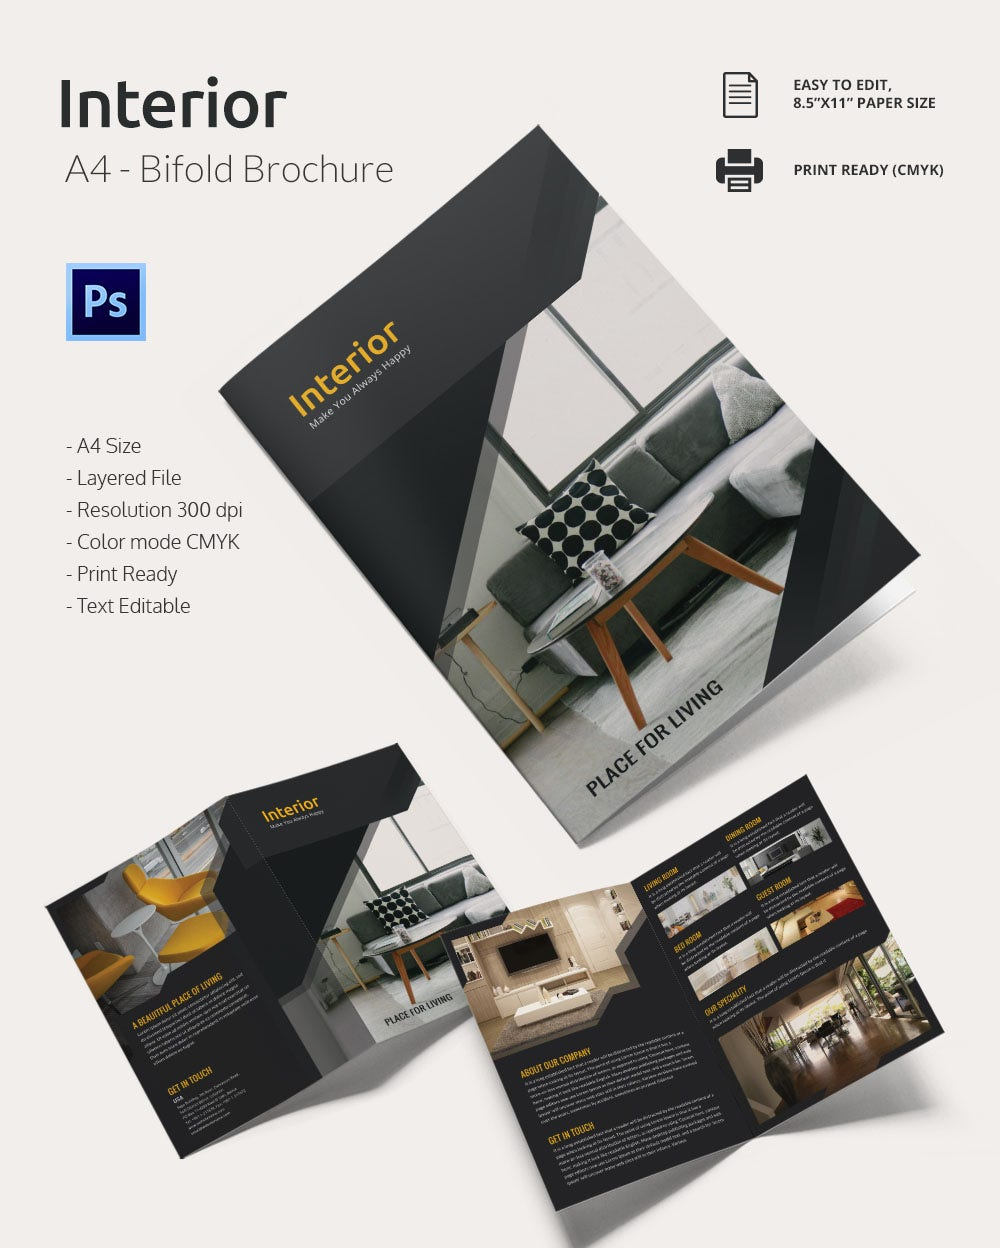 17 interior decoration brochure free word psd pdf for Interior design layout templates